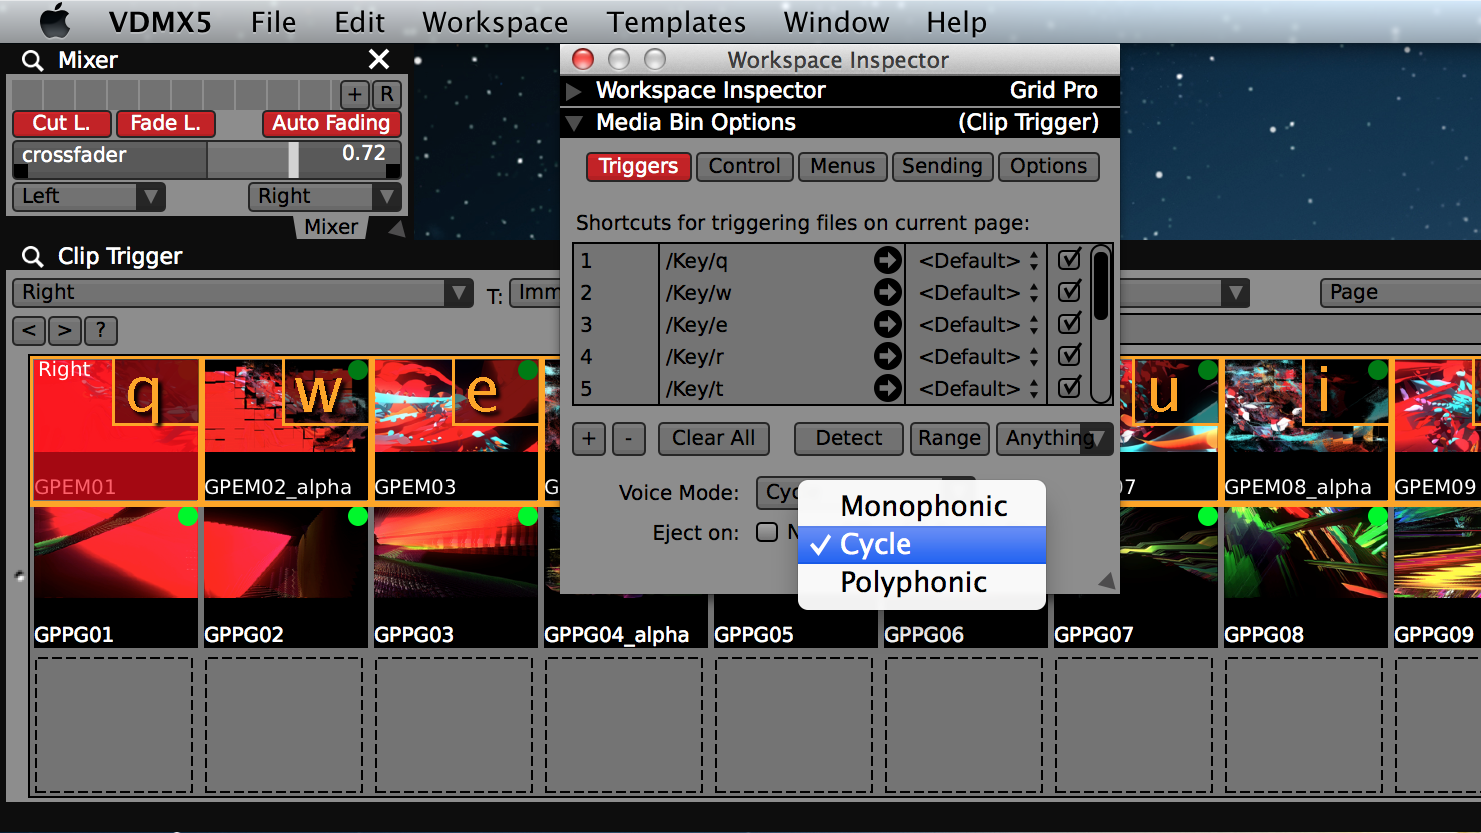 Set the voice mode of the 'Media Bin' to 'Cycle' and use the 'Auto-Fade' option in the Two Channel mixer for transitions.